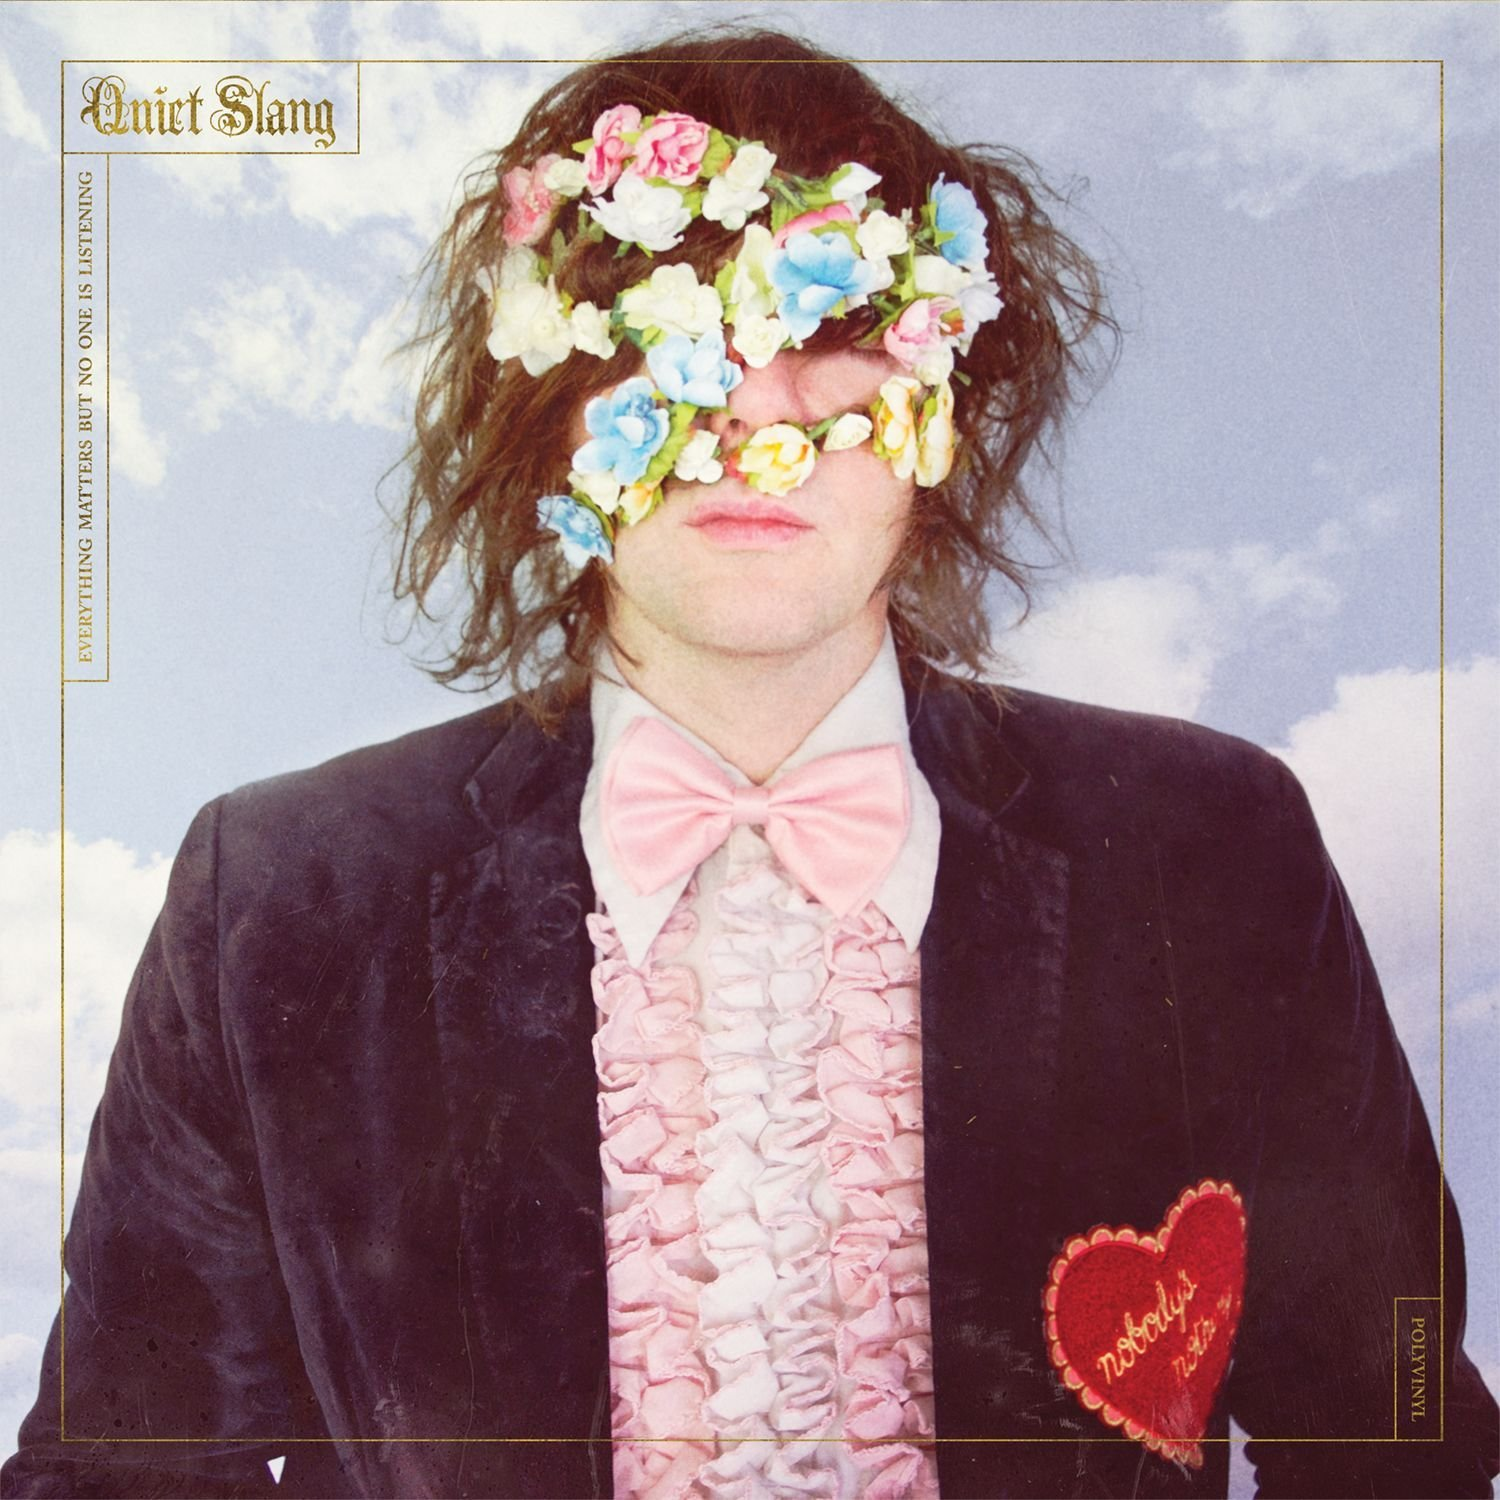 Beach Slang - Everything Matters But No One Is Listening [Quiet Slang] [Clear LP]